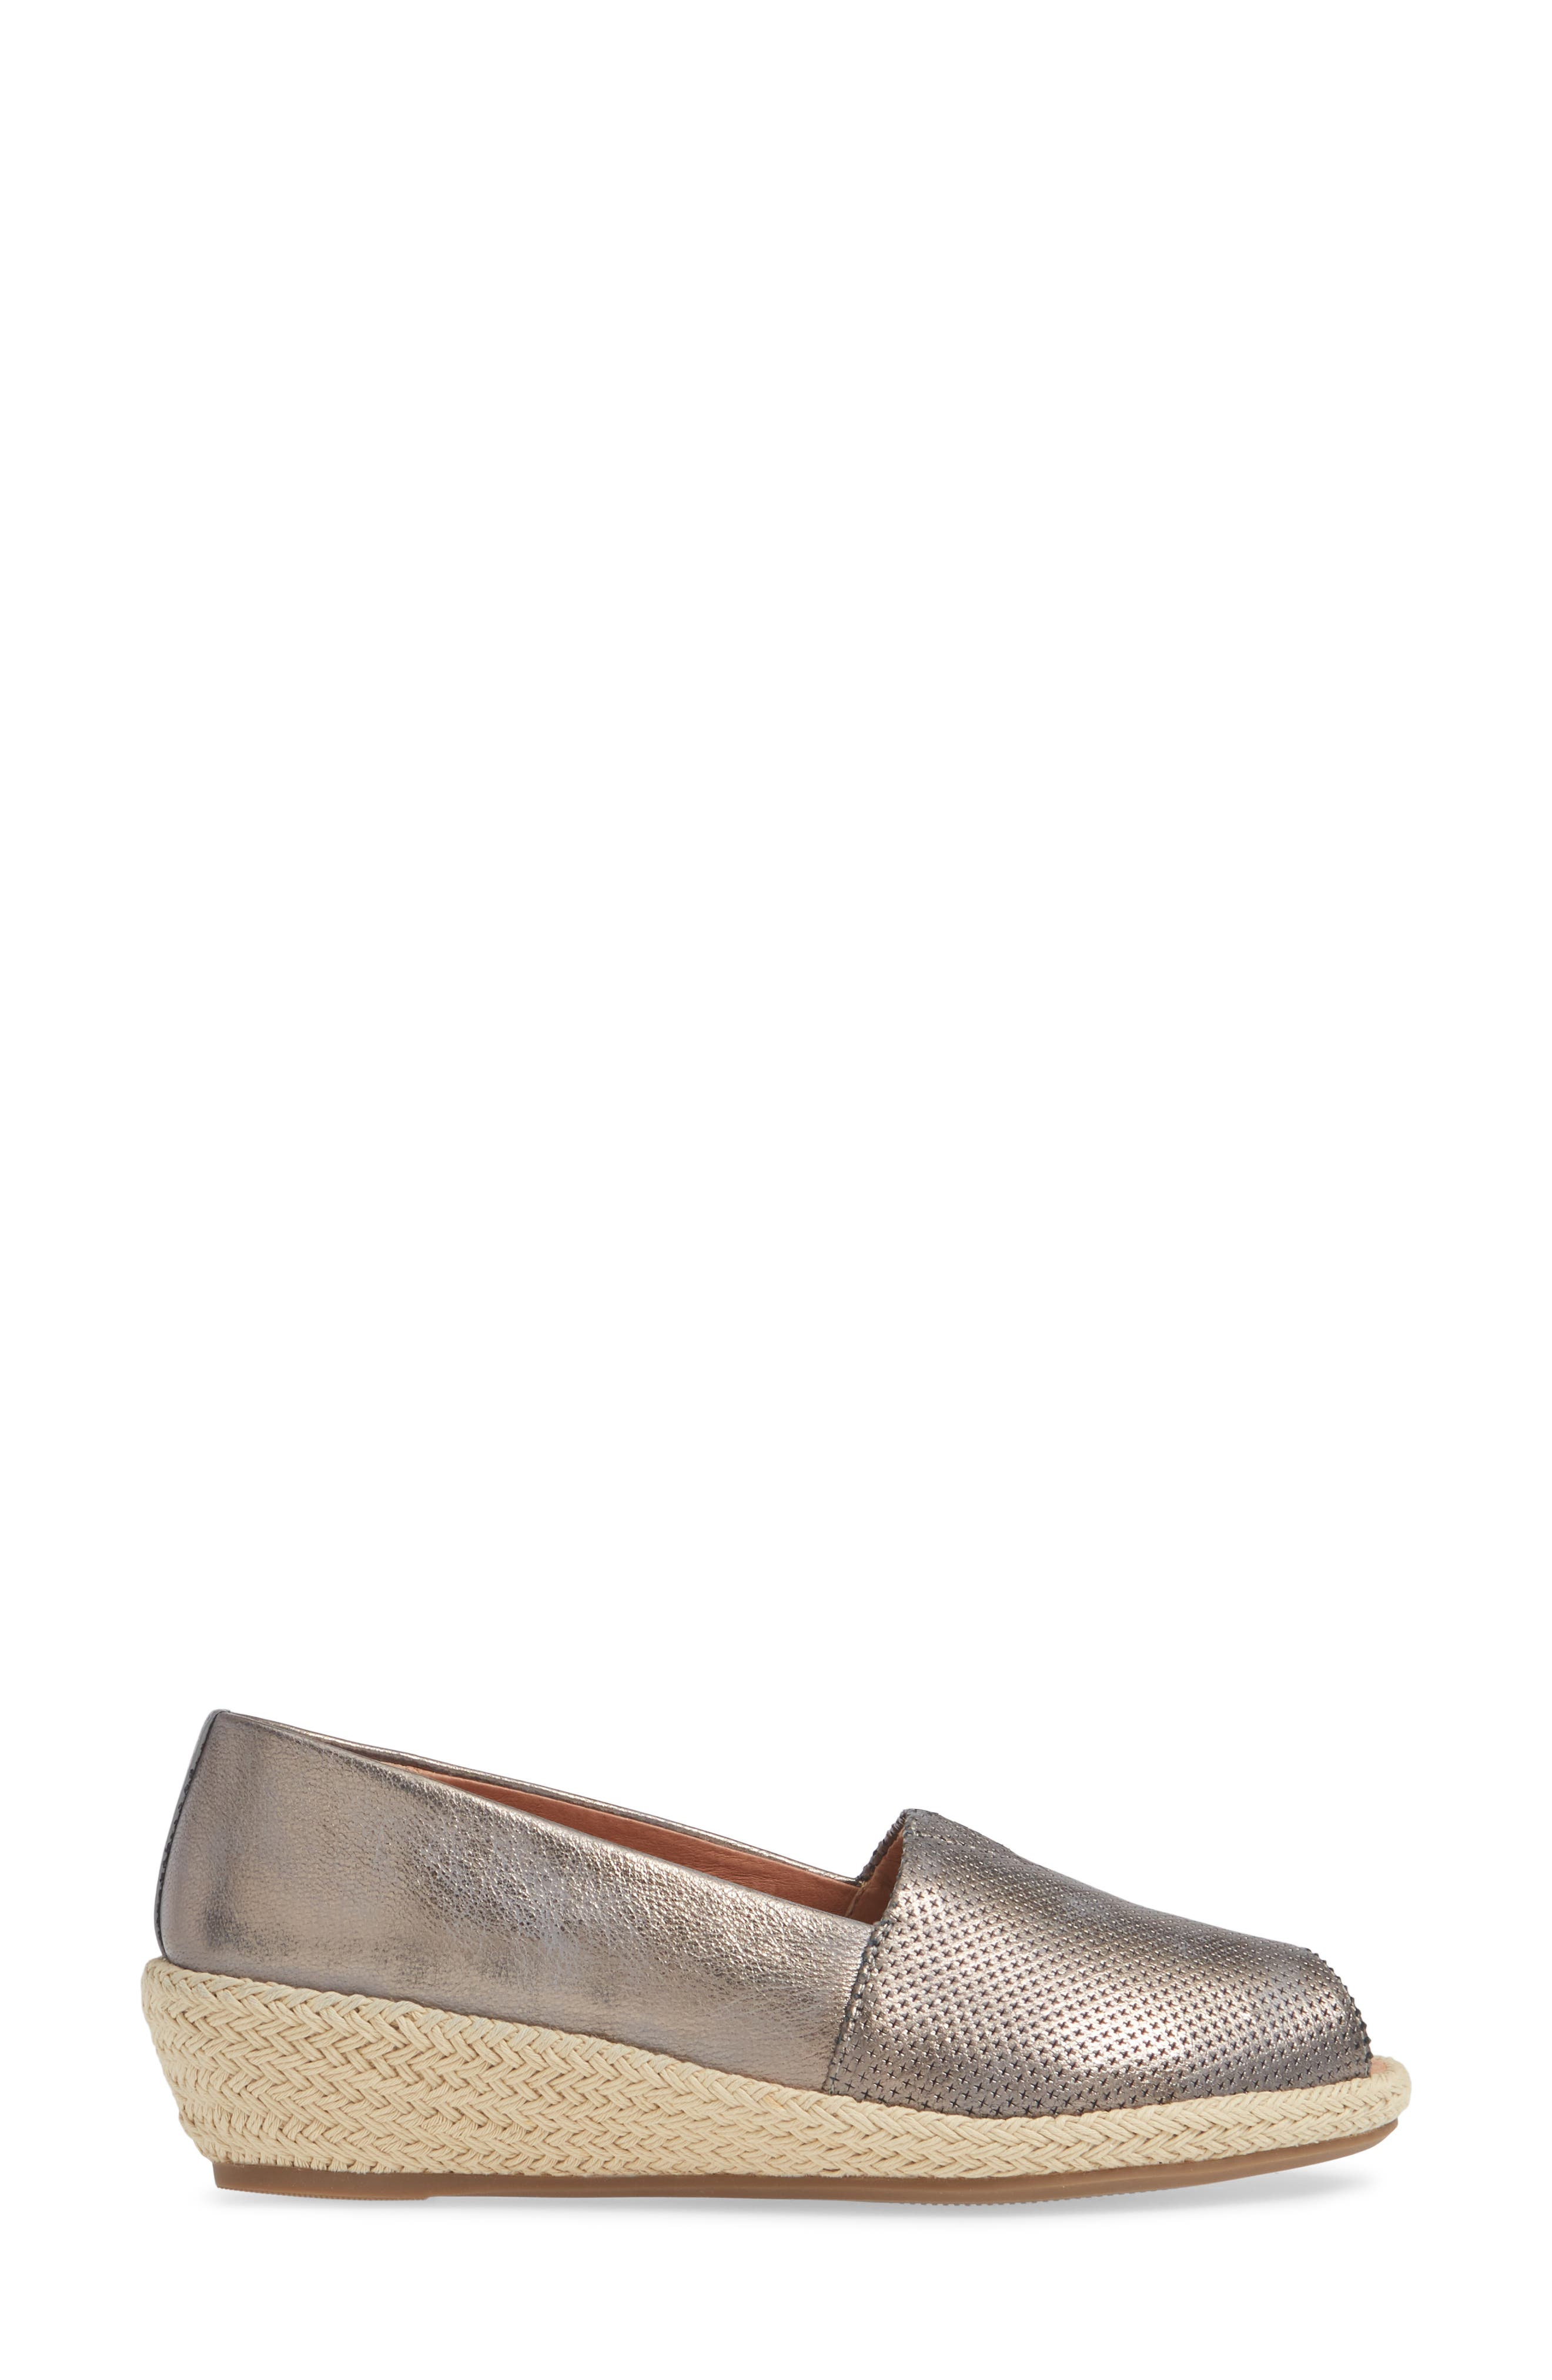 GENTLE SOULS BY KENNETH COLE, Luca Open Toe Wedge Espadrille, Alternate thumbnail 3, color, PEWTER METALLIC LEATHER